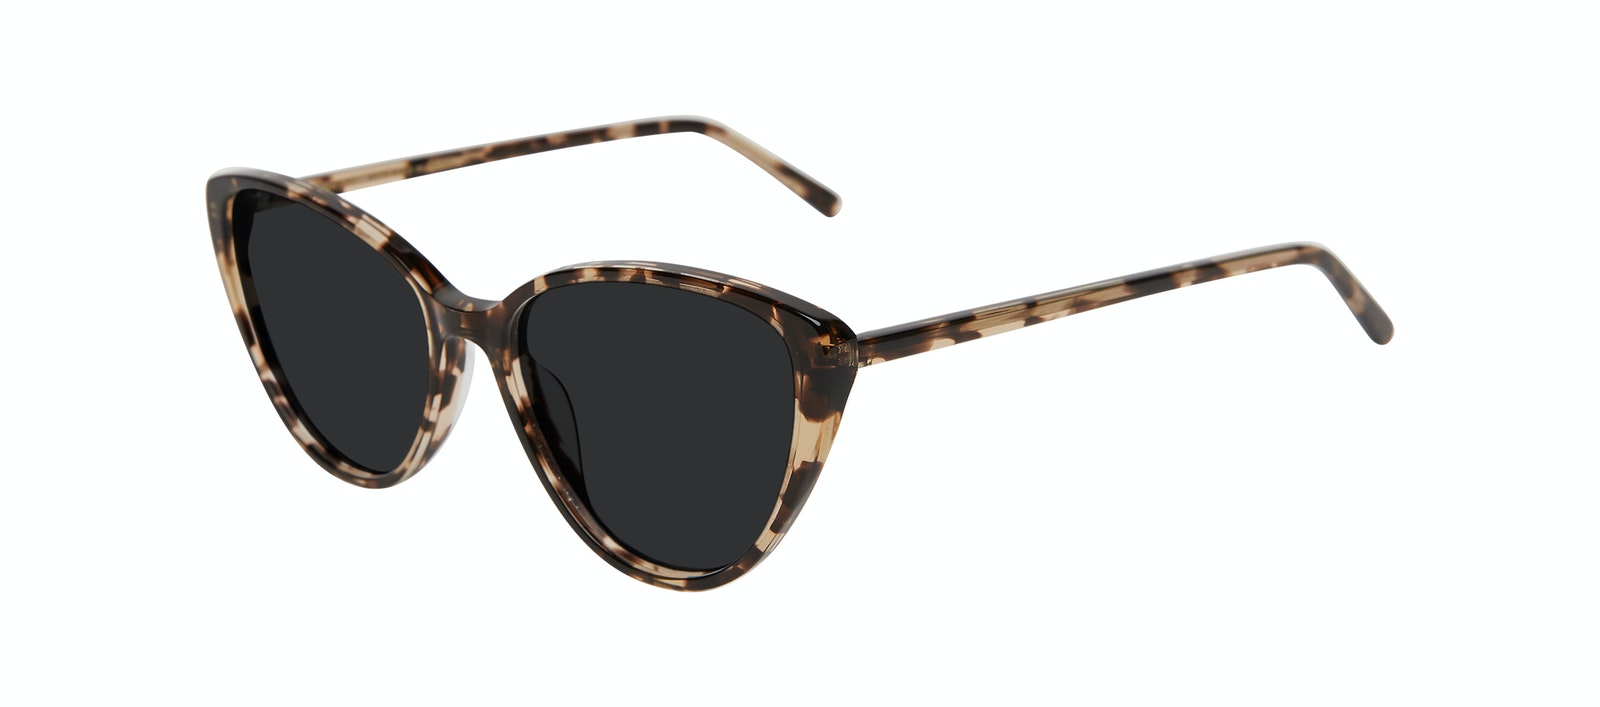 Affordable Fashion Glasses Cat Eye Sunglasses Women Poise Leopard Tilt